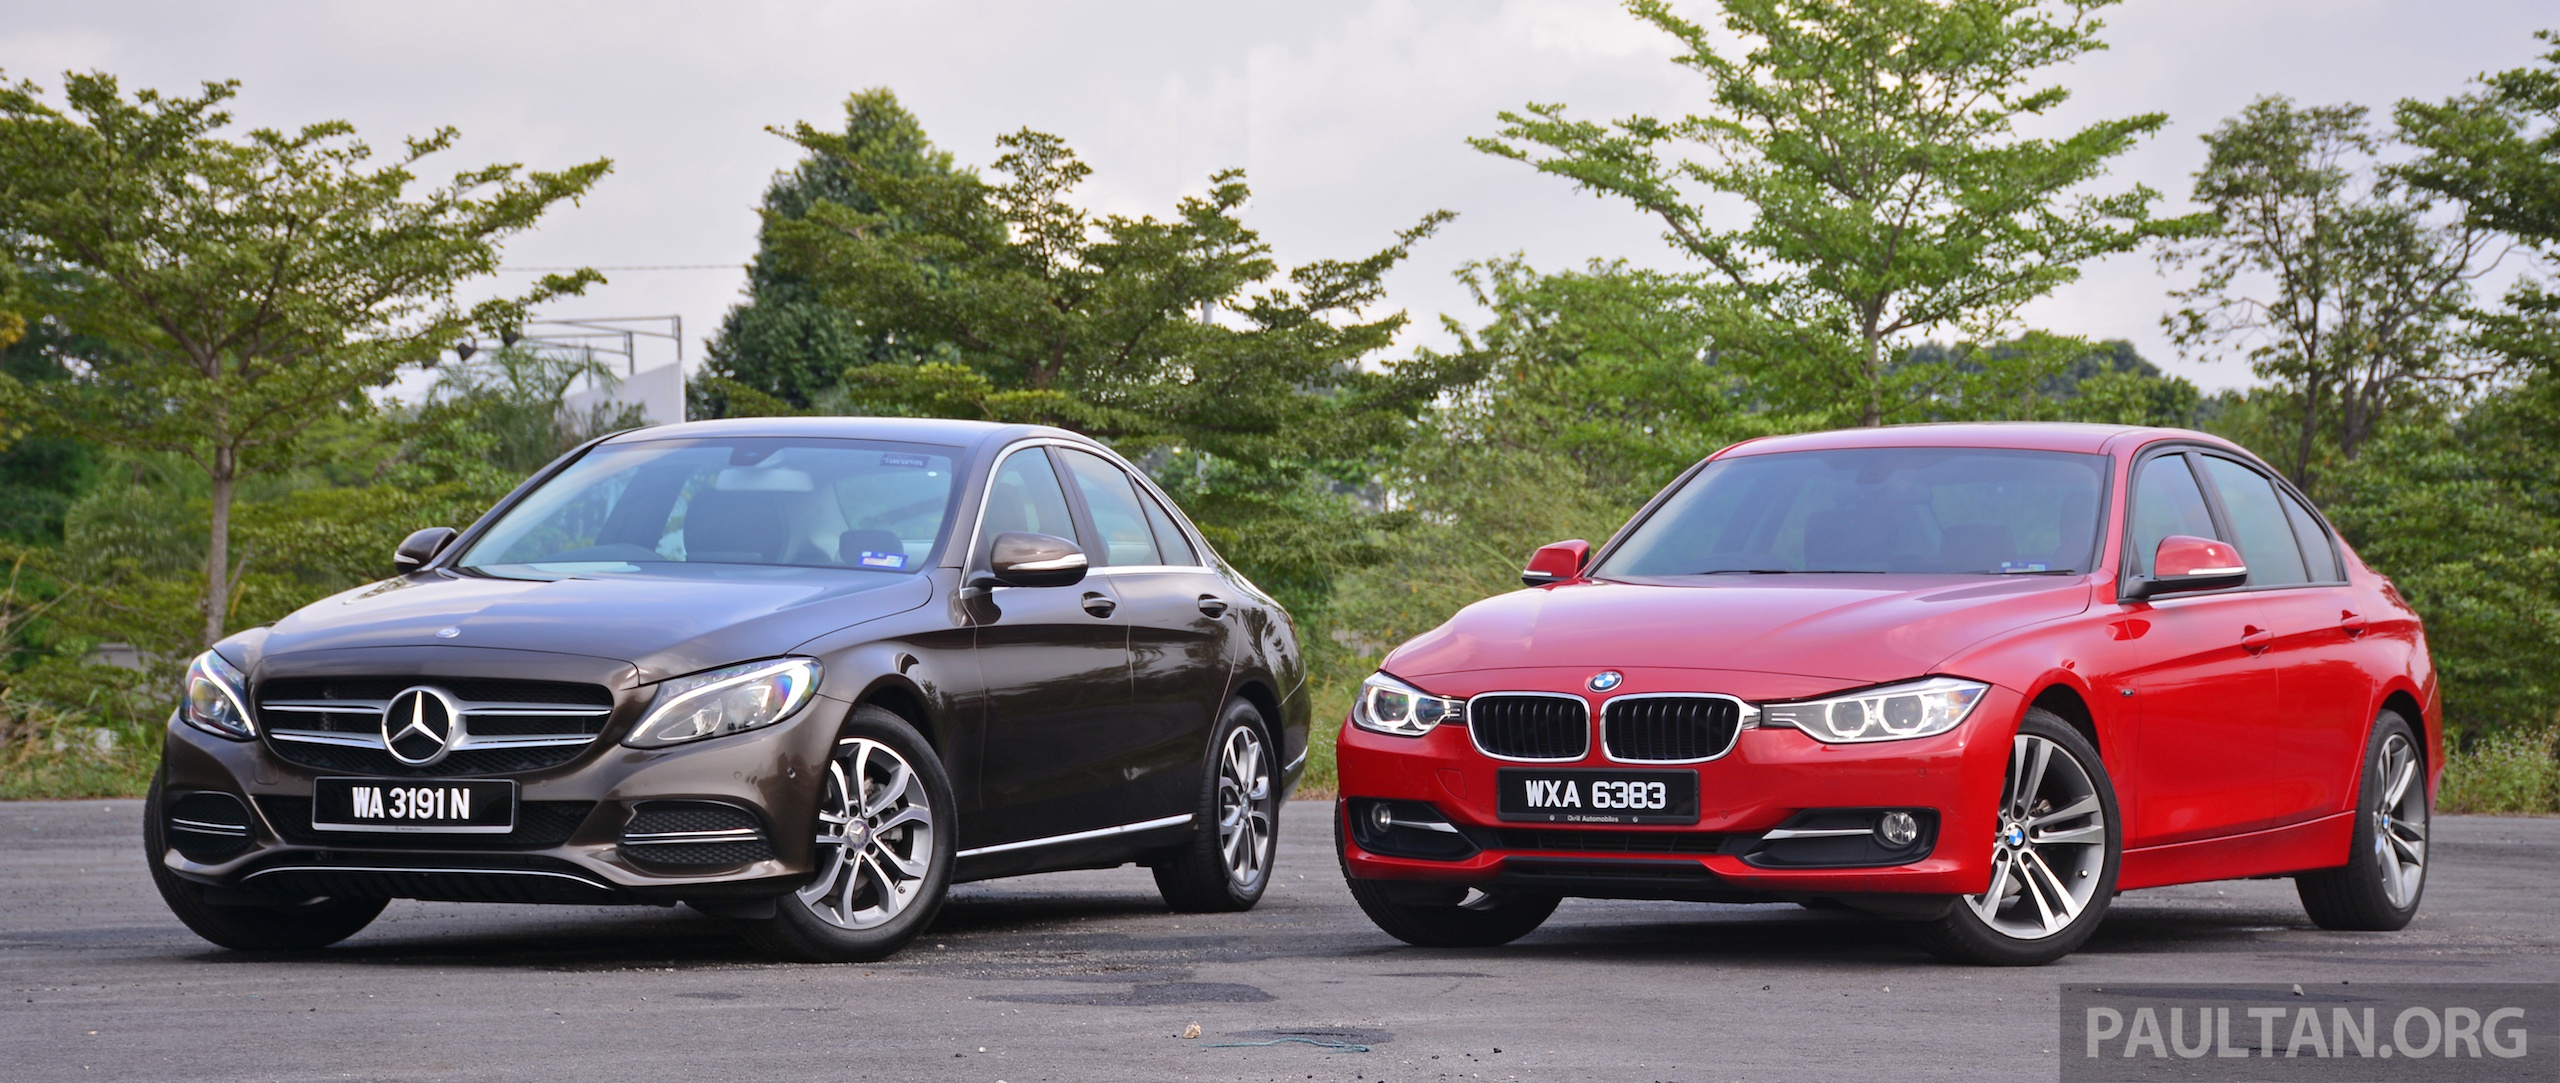 Gallery w205 merc c class vs f30 bmw 3 series image 286250 for Mercedes benz 3 series